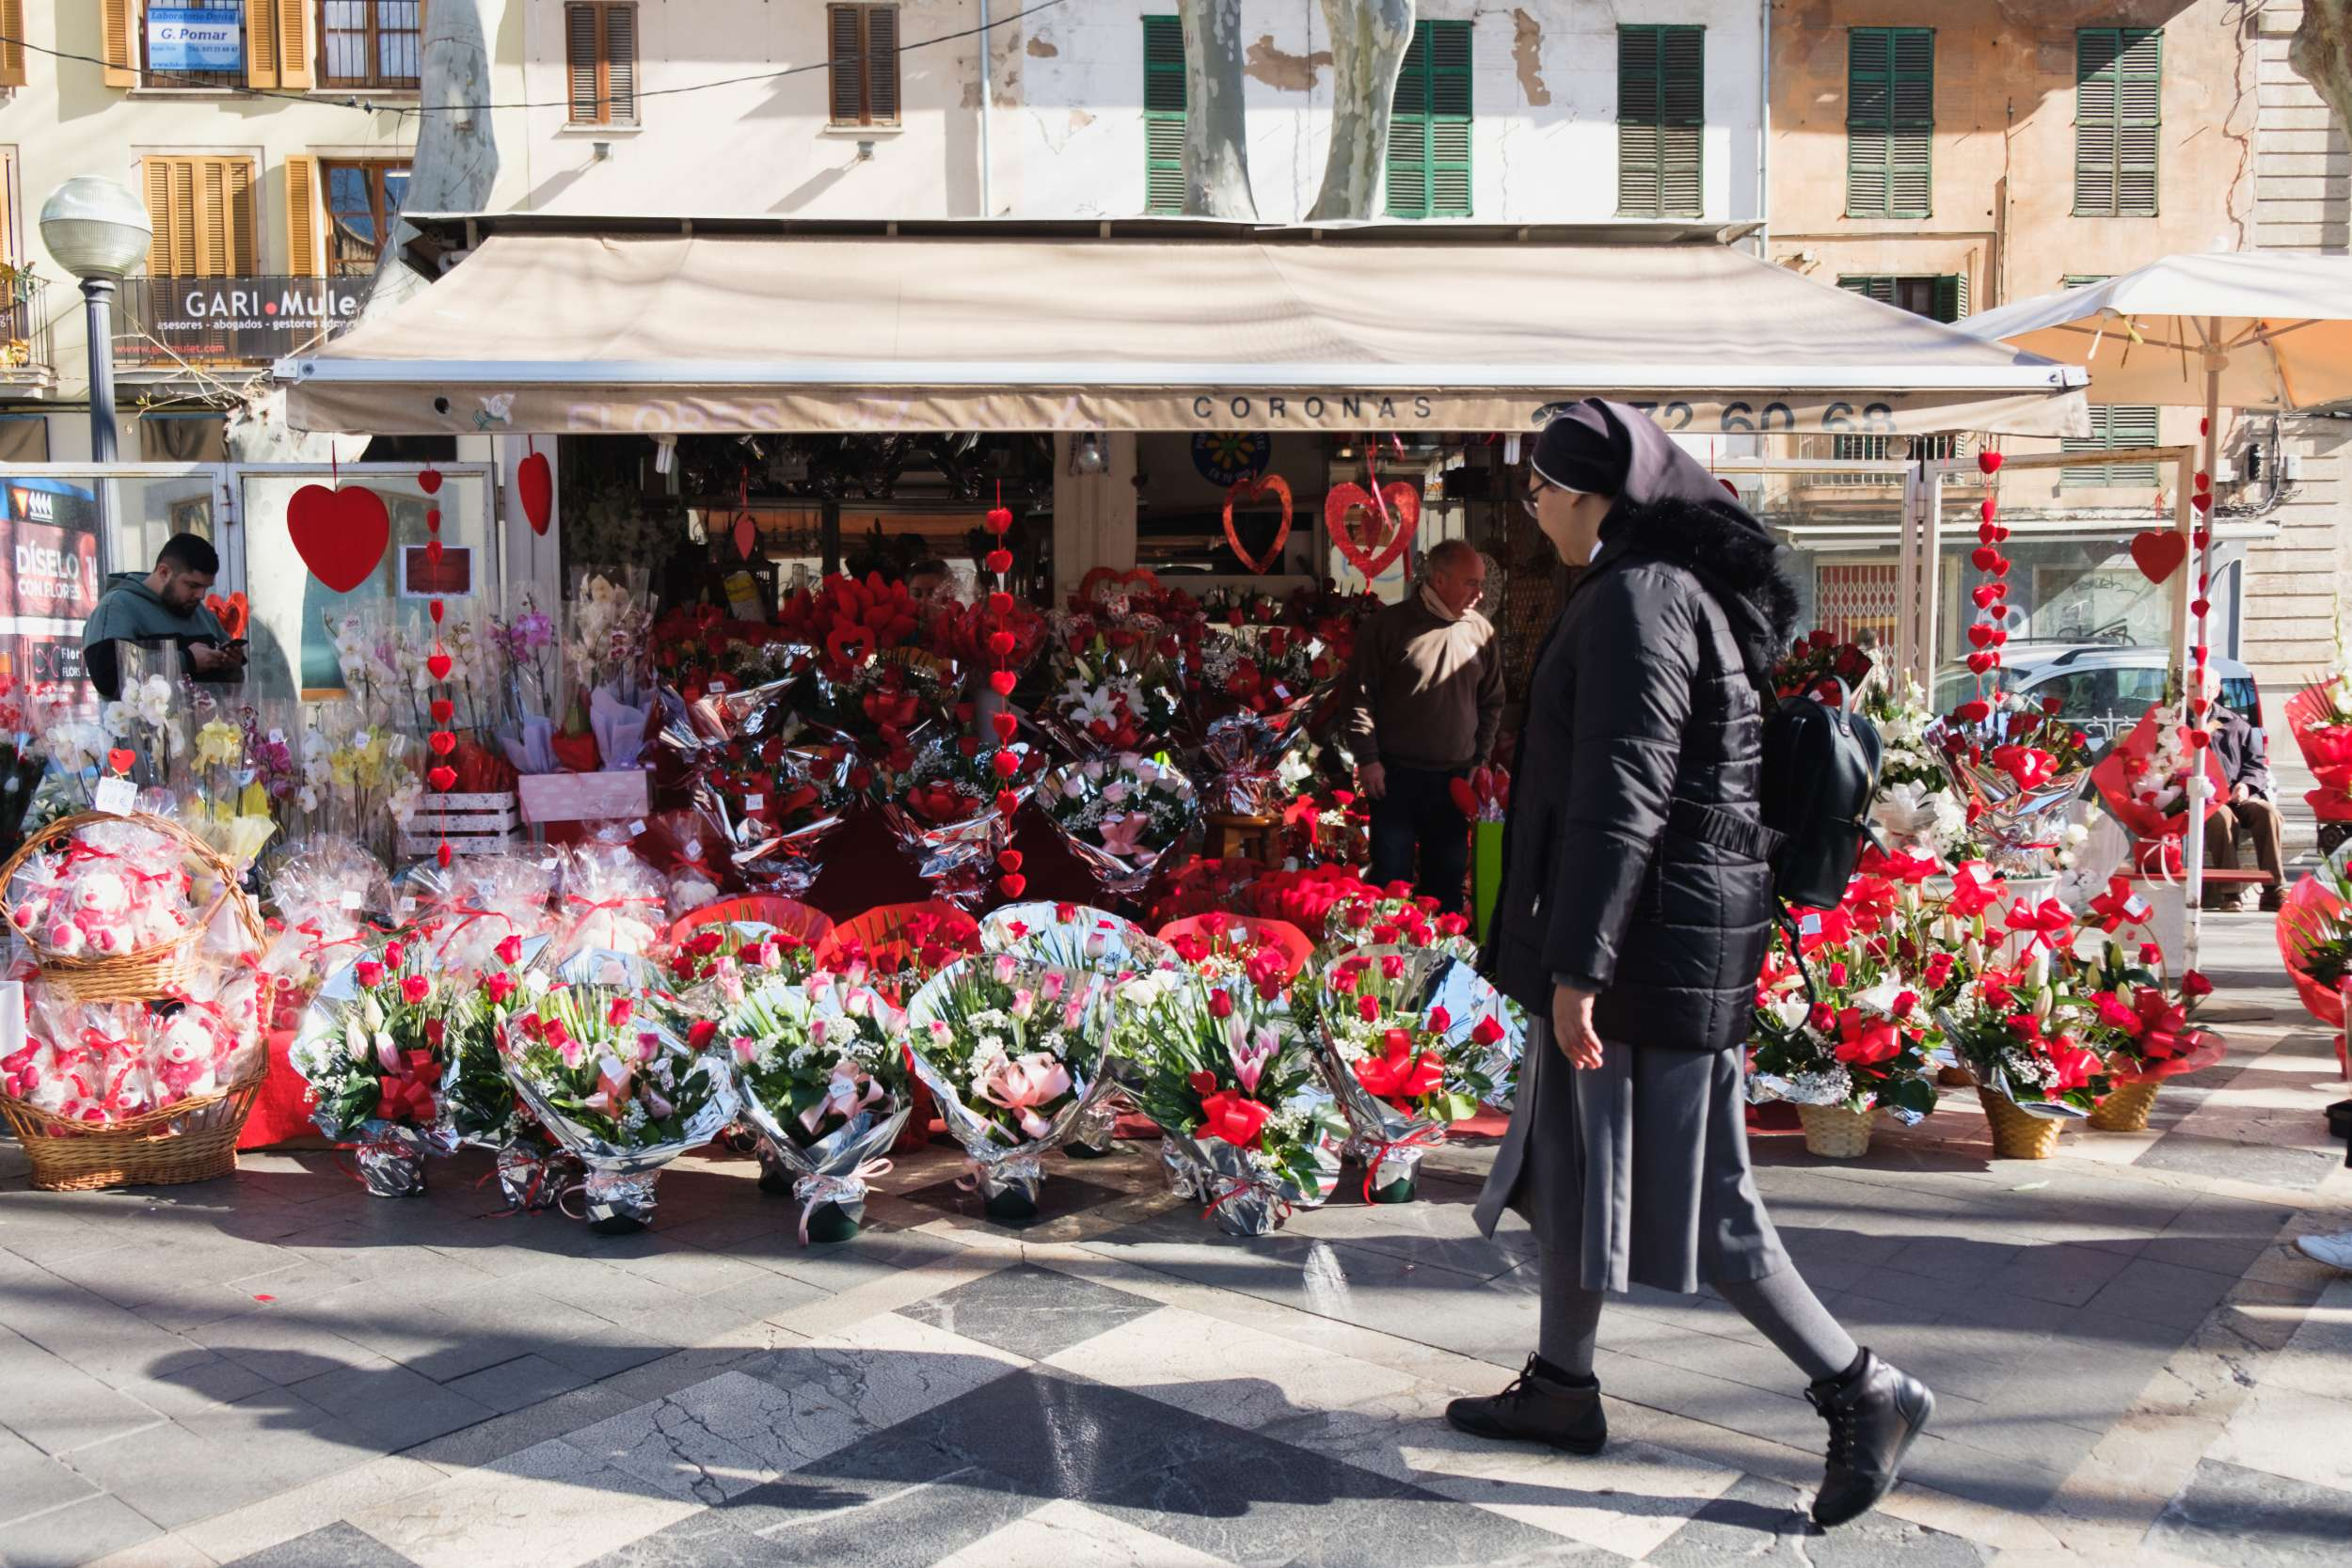 Flower stalls on Palma's Rambla in the Old Town - Mallorca Travel Photography by Ben Holbrook from DriftwoodJournals.com